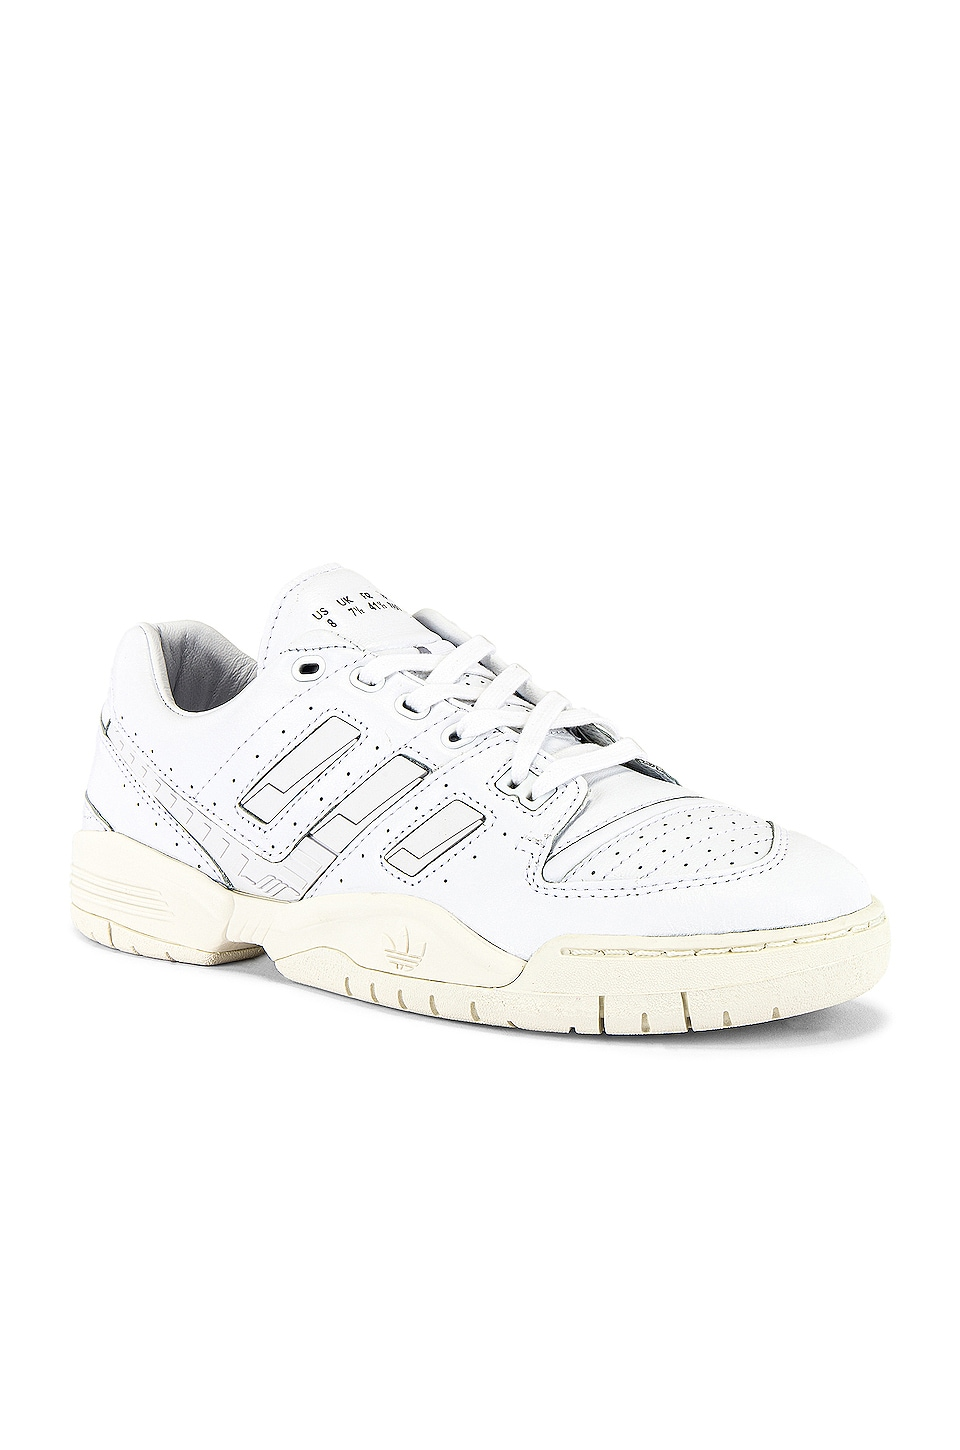 adidas Originals Torsion Comp Sneaker in White